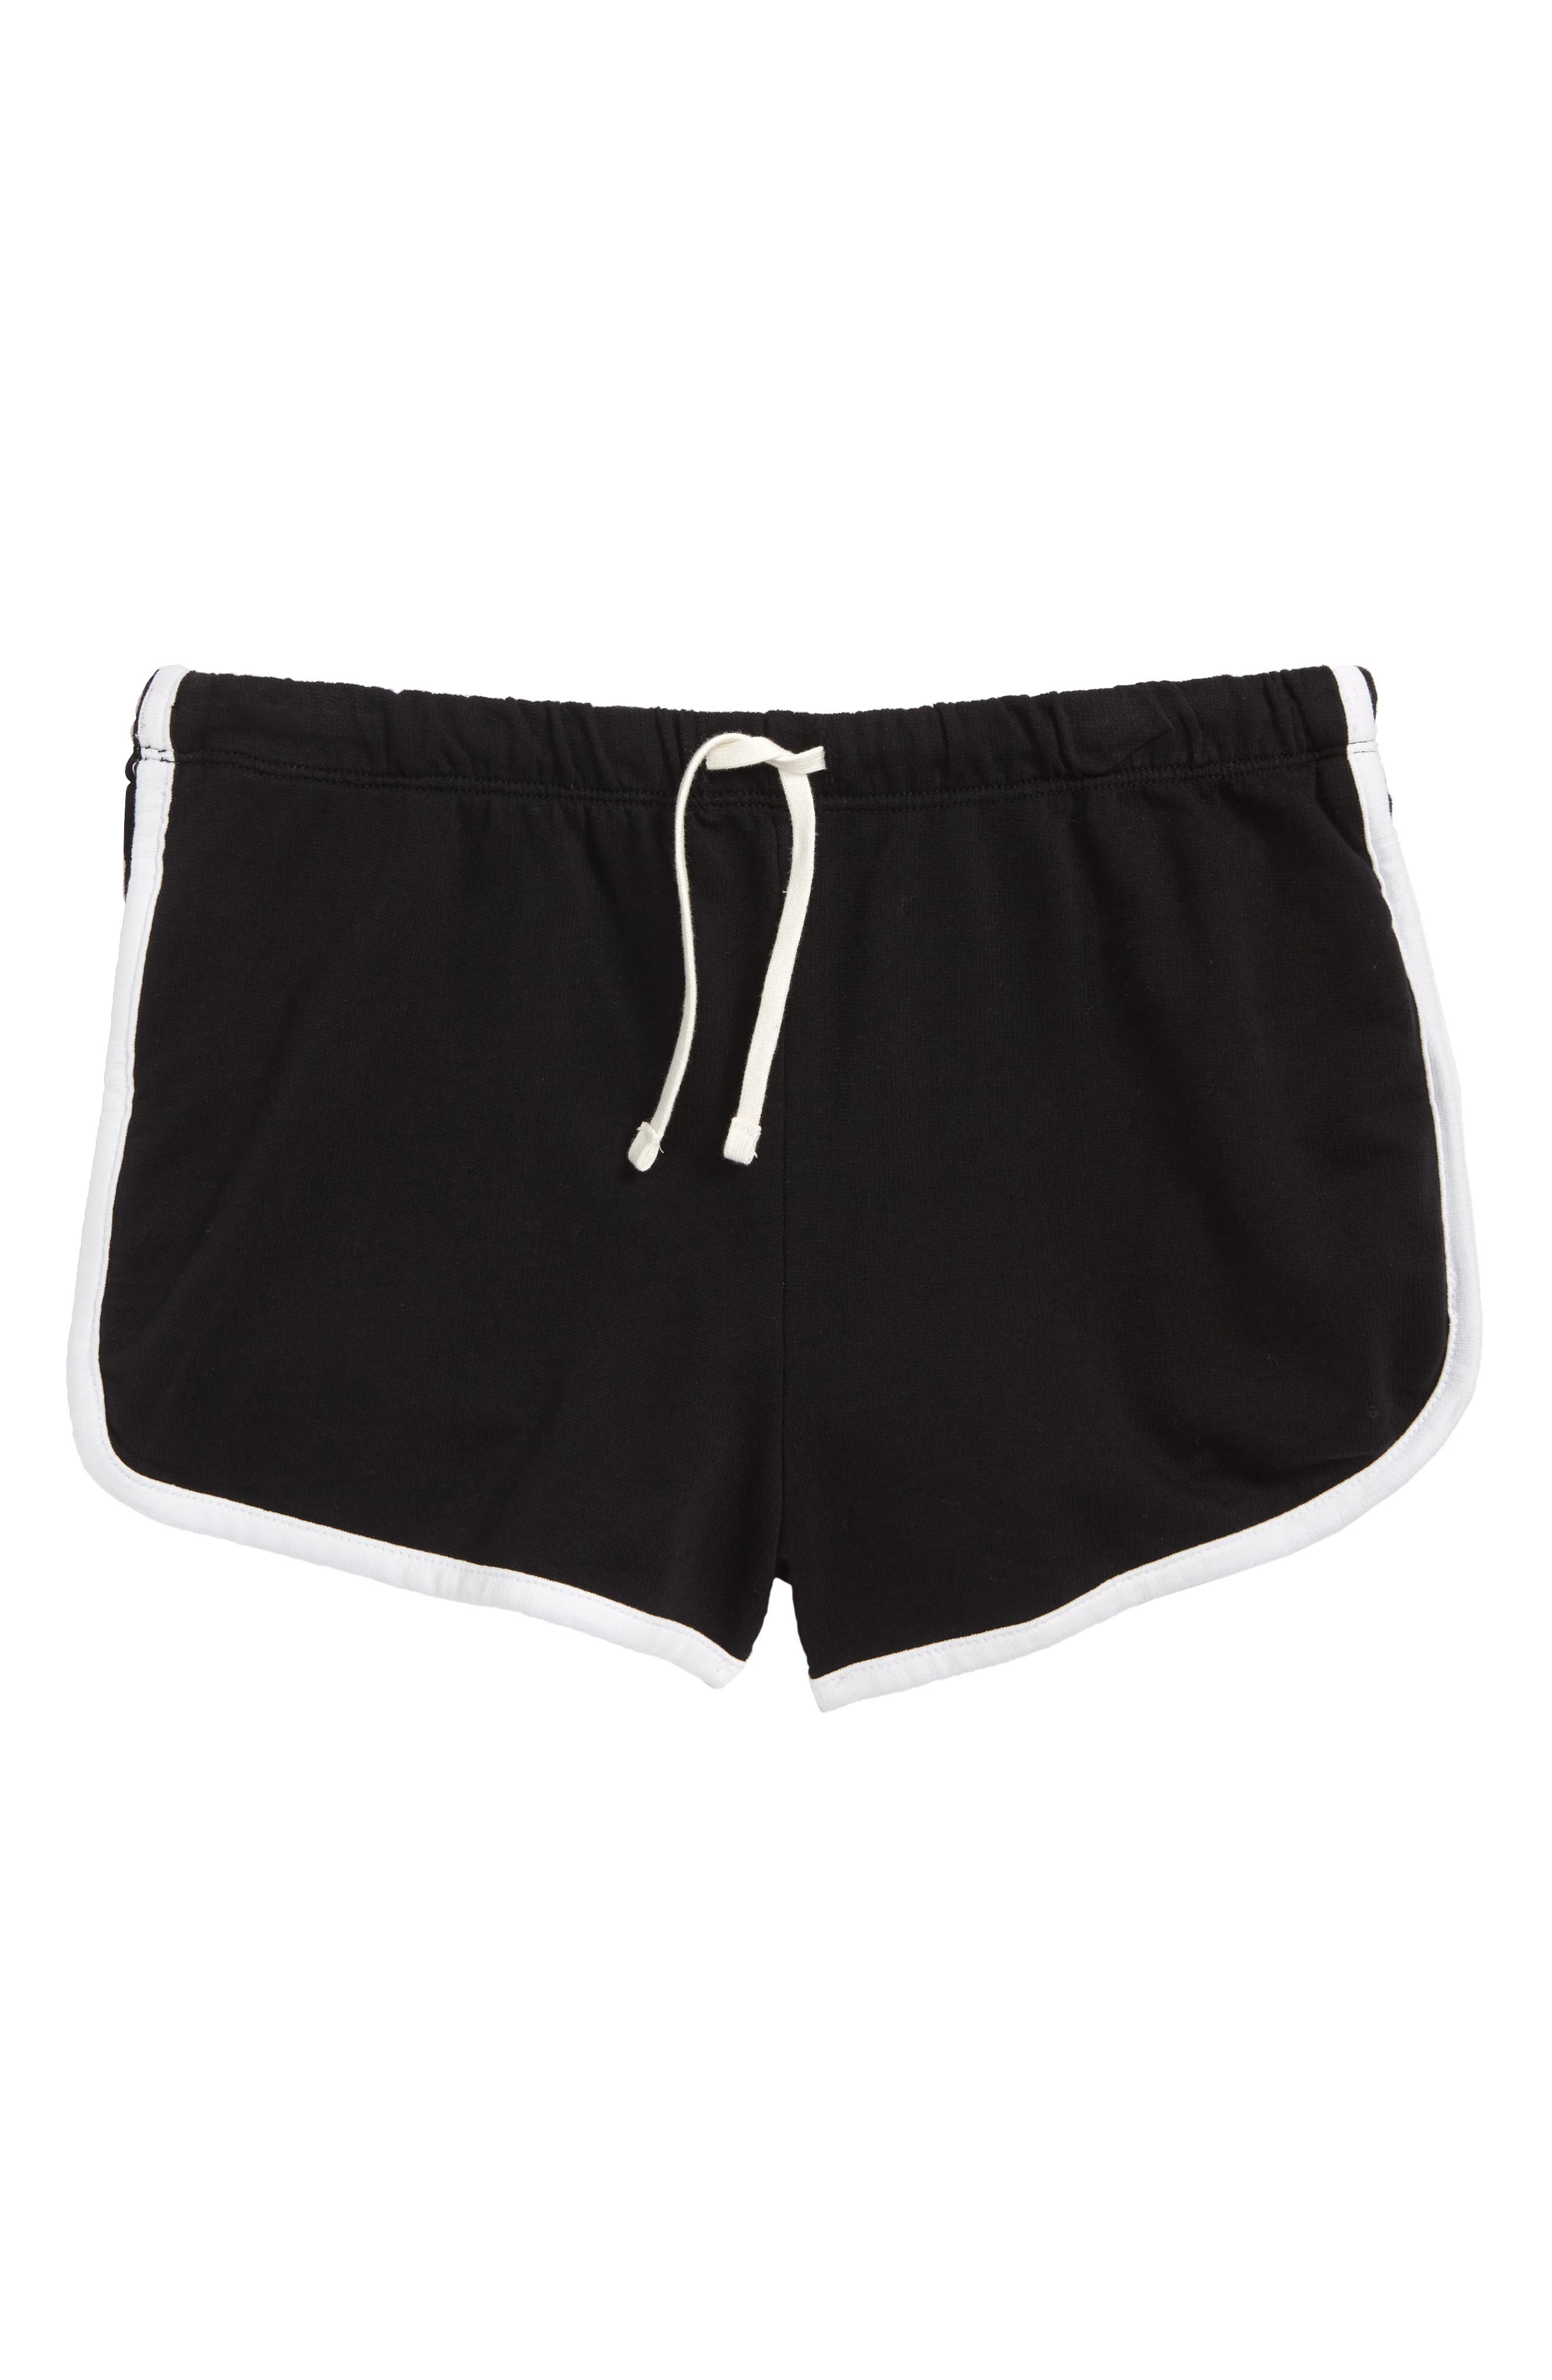 Cotton Dolphin Shorts,                         Main,                         color, 001